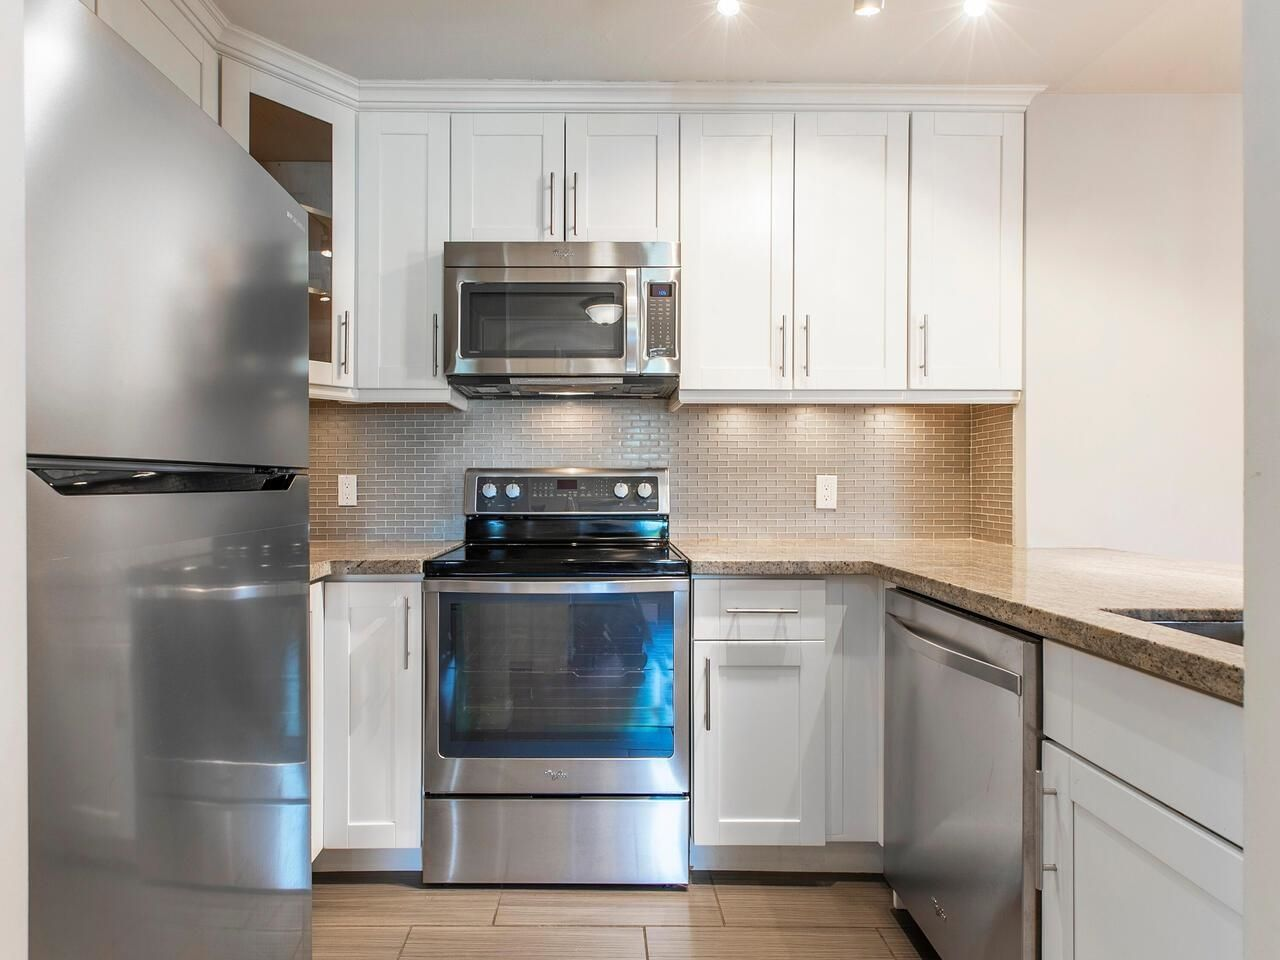 Main Photo: 403 137 W 17 Street in North Vancouver: Central Lonsdale Condo for sale : MLS®# R2616728